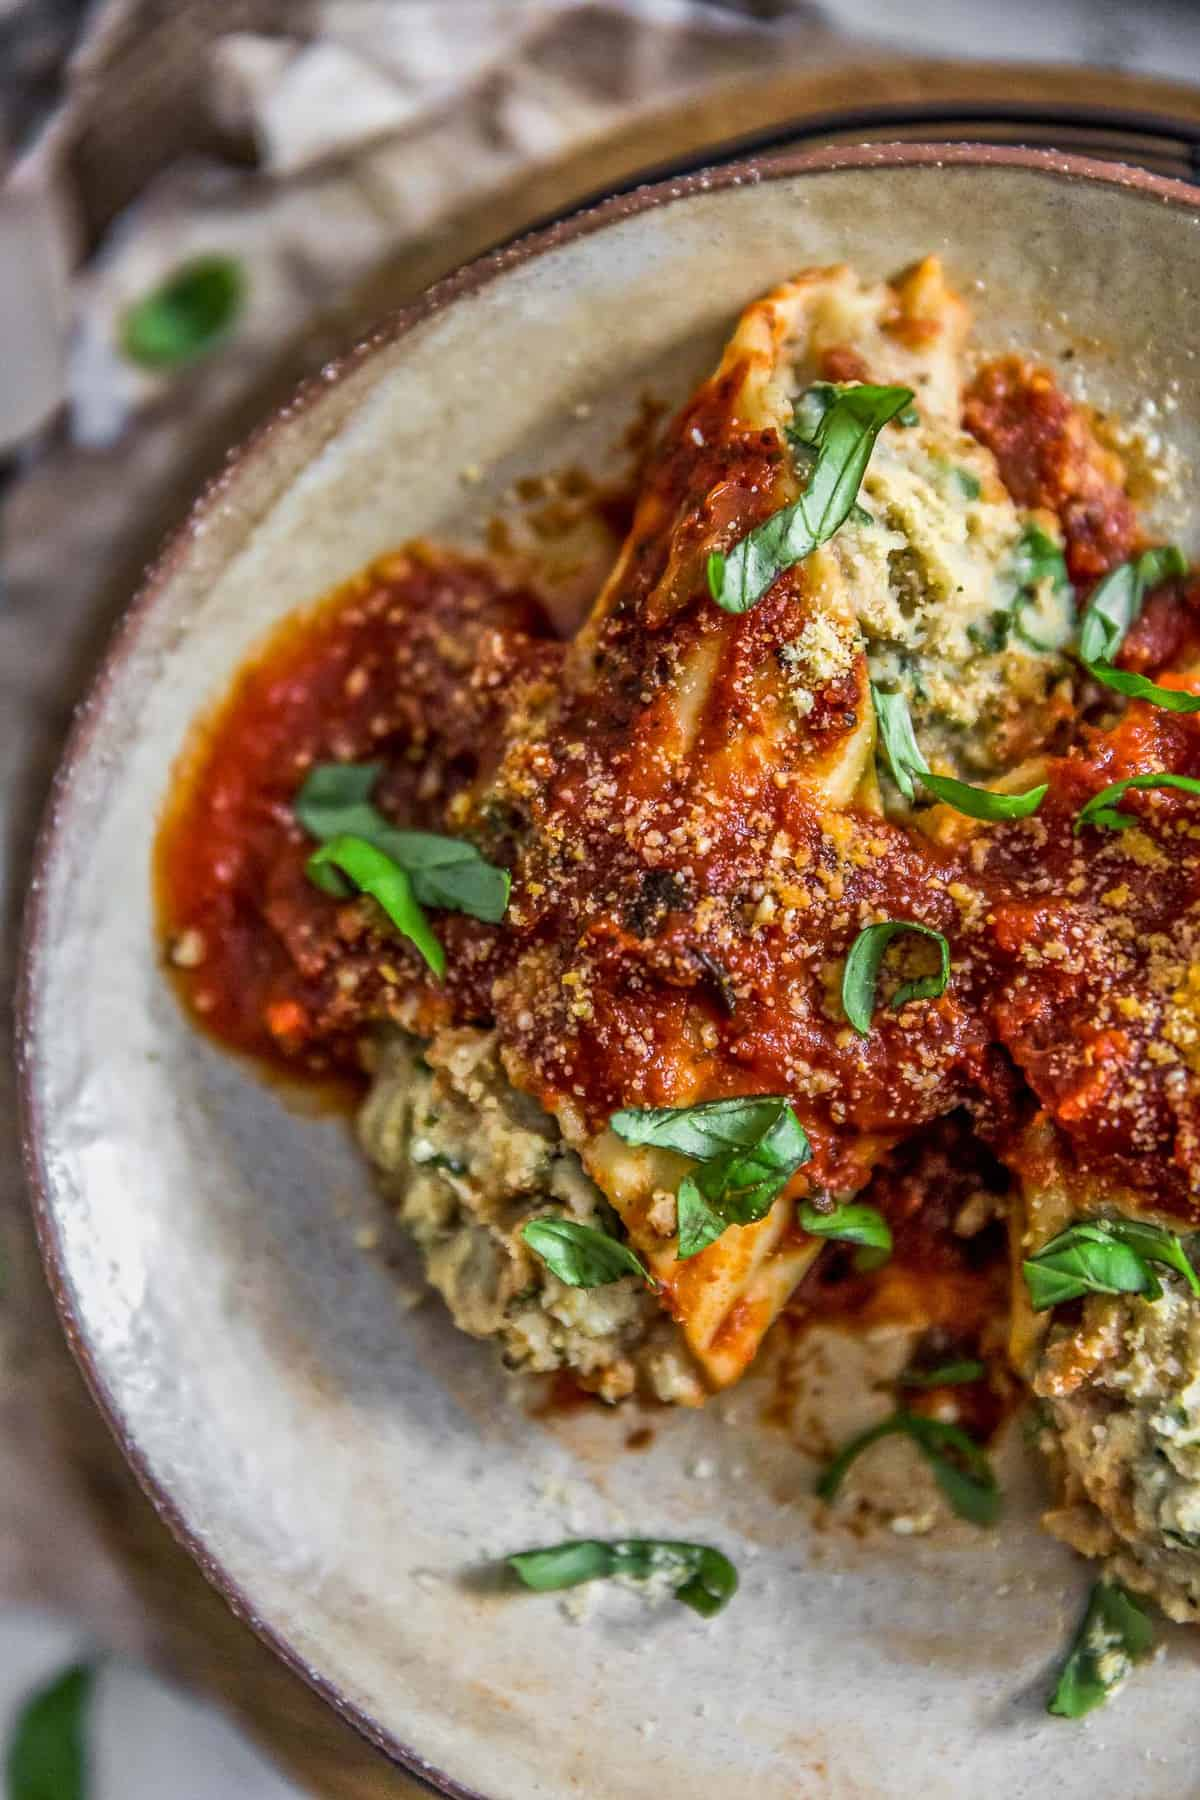 Plated Vegan Manicotti Stuffed with Cauliflower Cream and Spinach